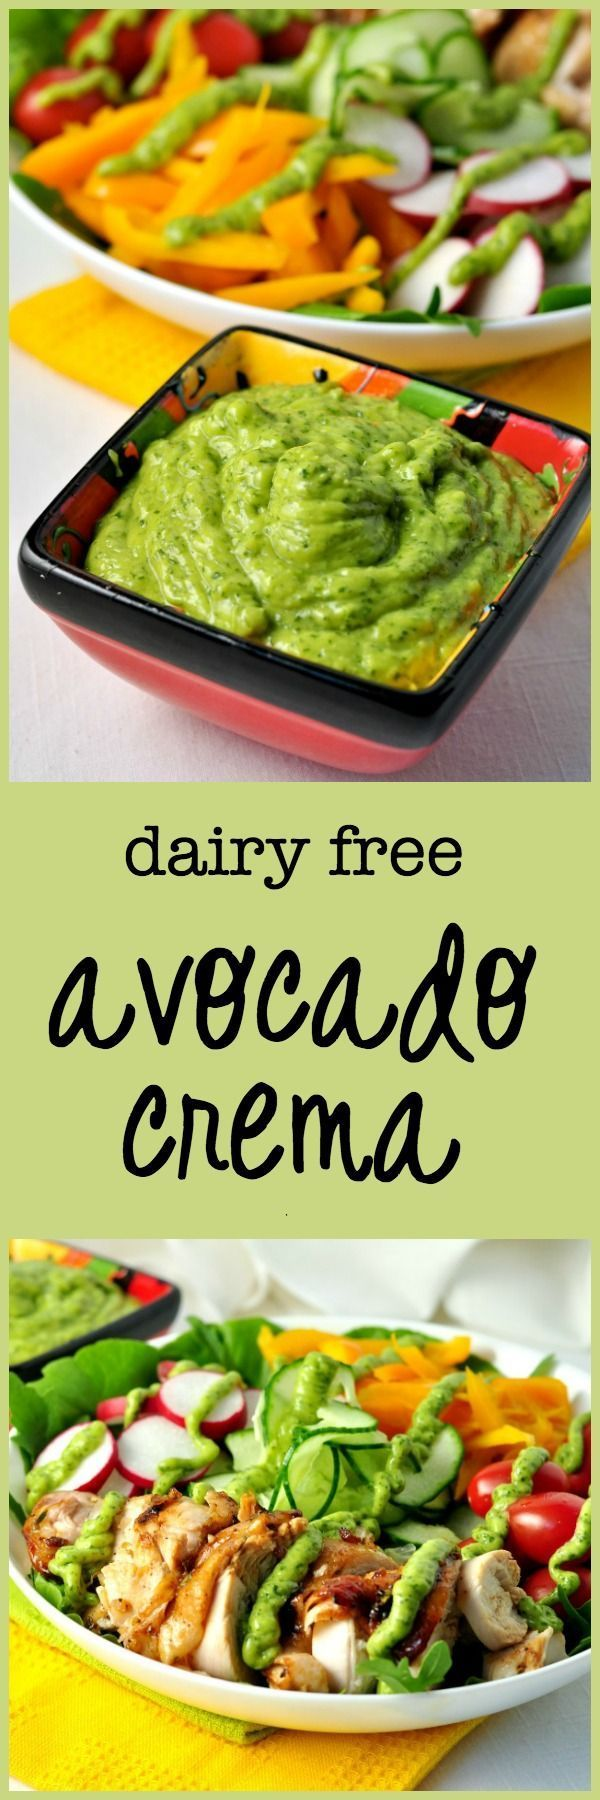 Use this Dairy-free Avocado Cream as a dip, as a dressing, a topping for tacos or burritos. Creamy without the cream.